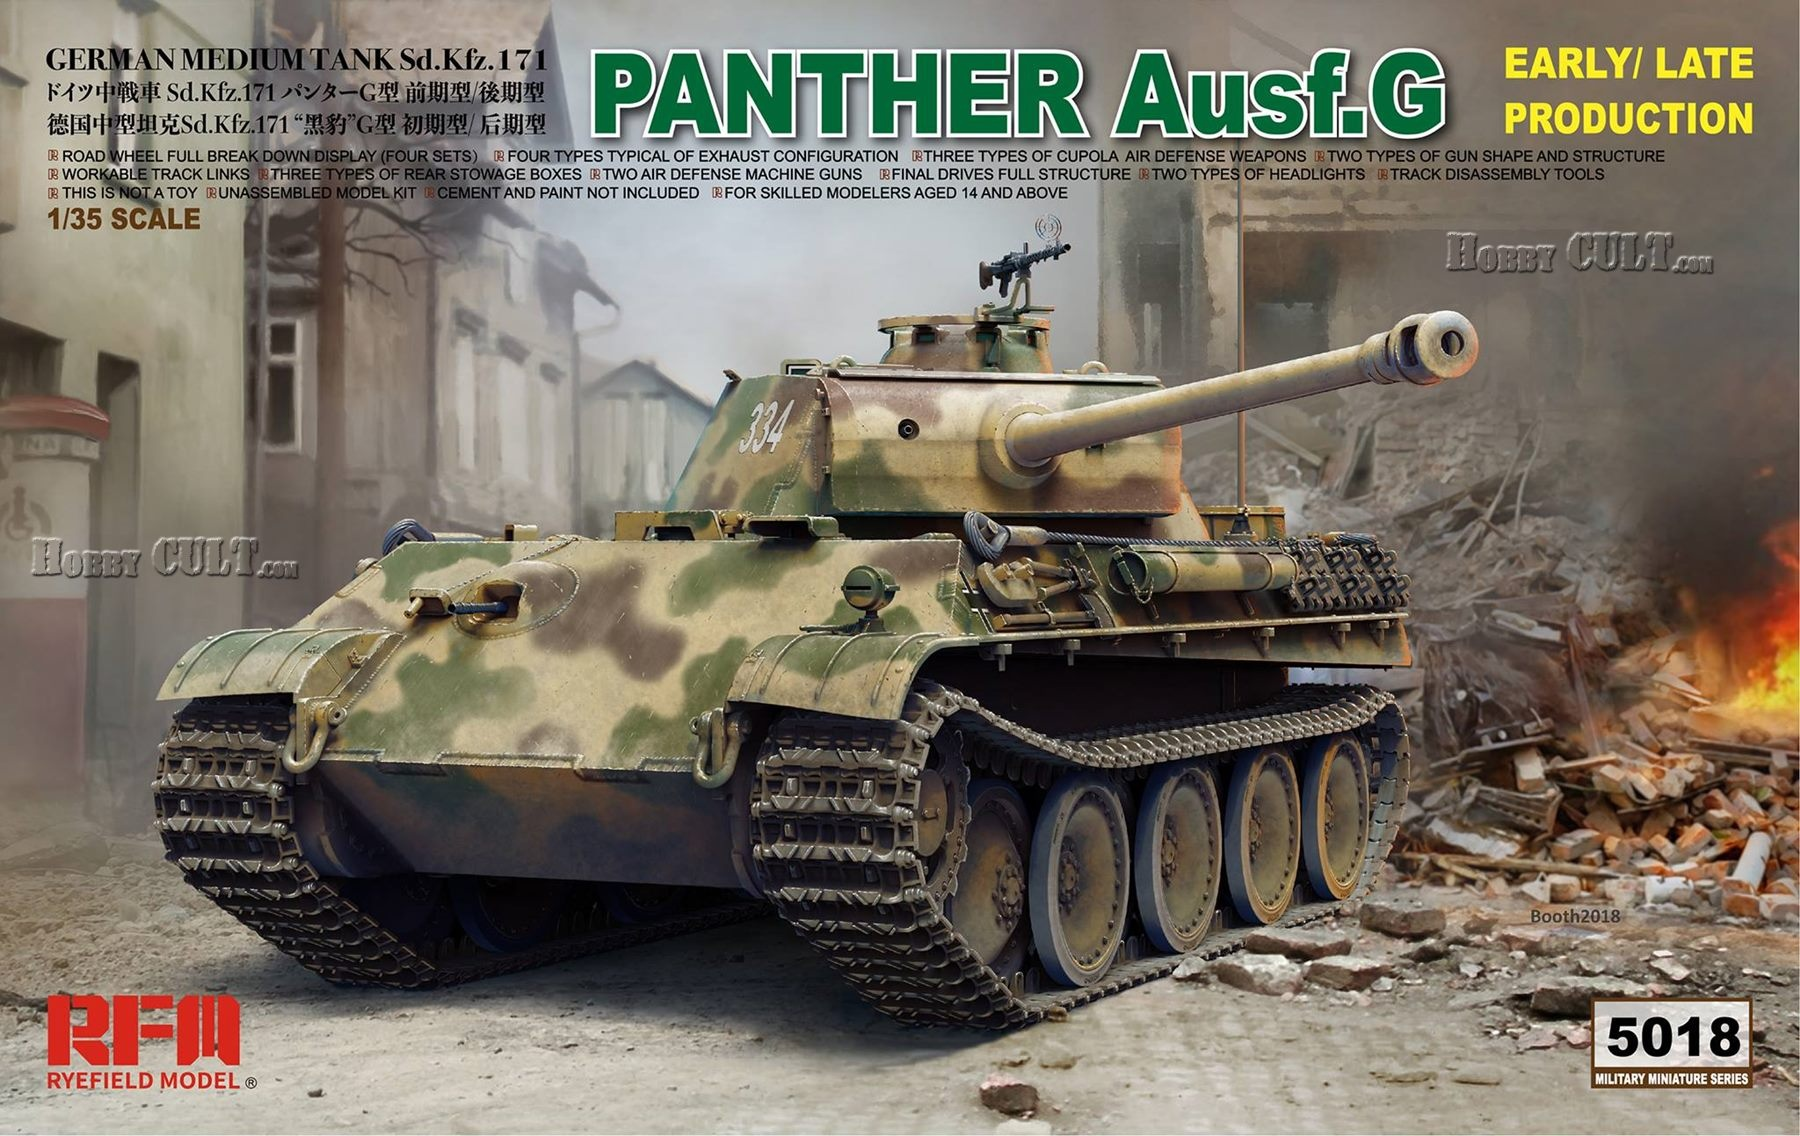 1:35 Sd.Kfz.171 Panther Ausf.G Early/Late Production (Pre-Order)